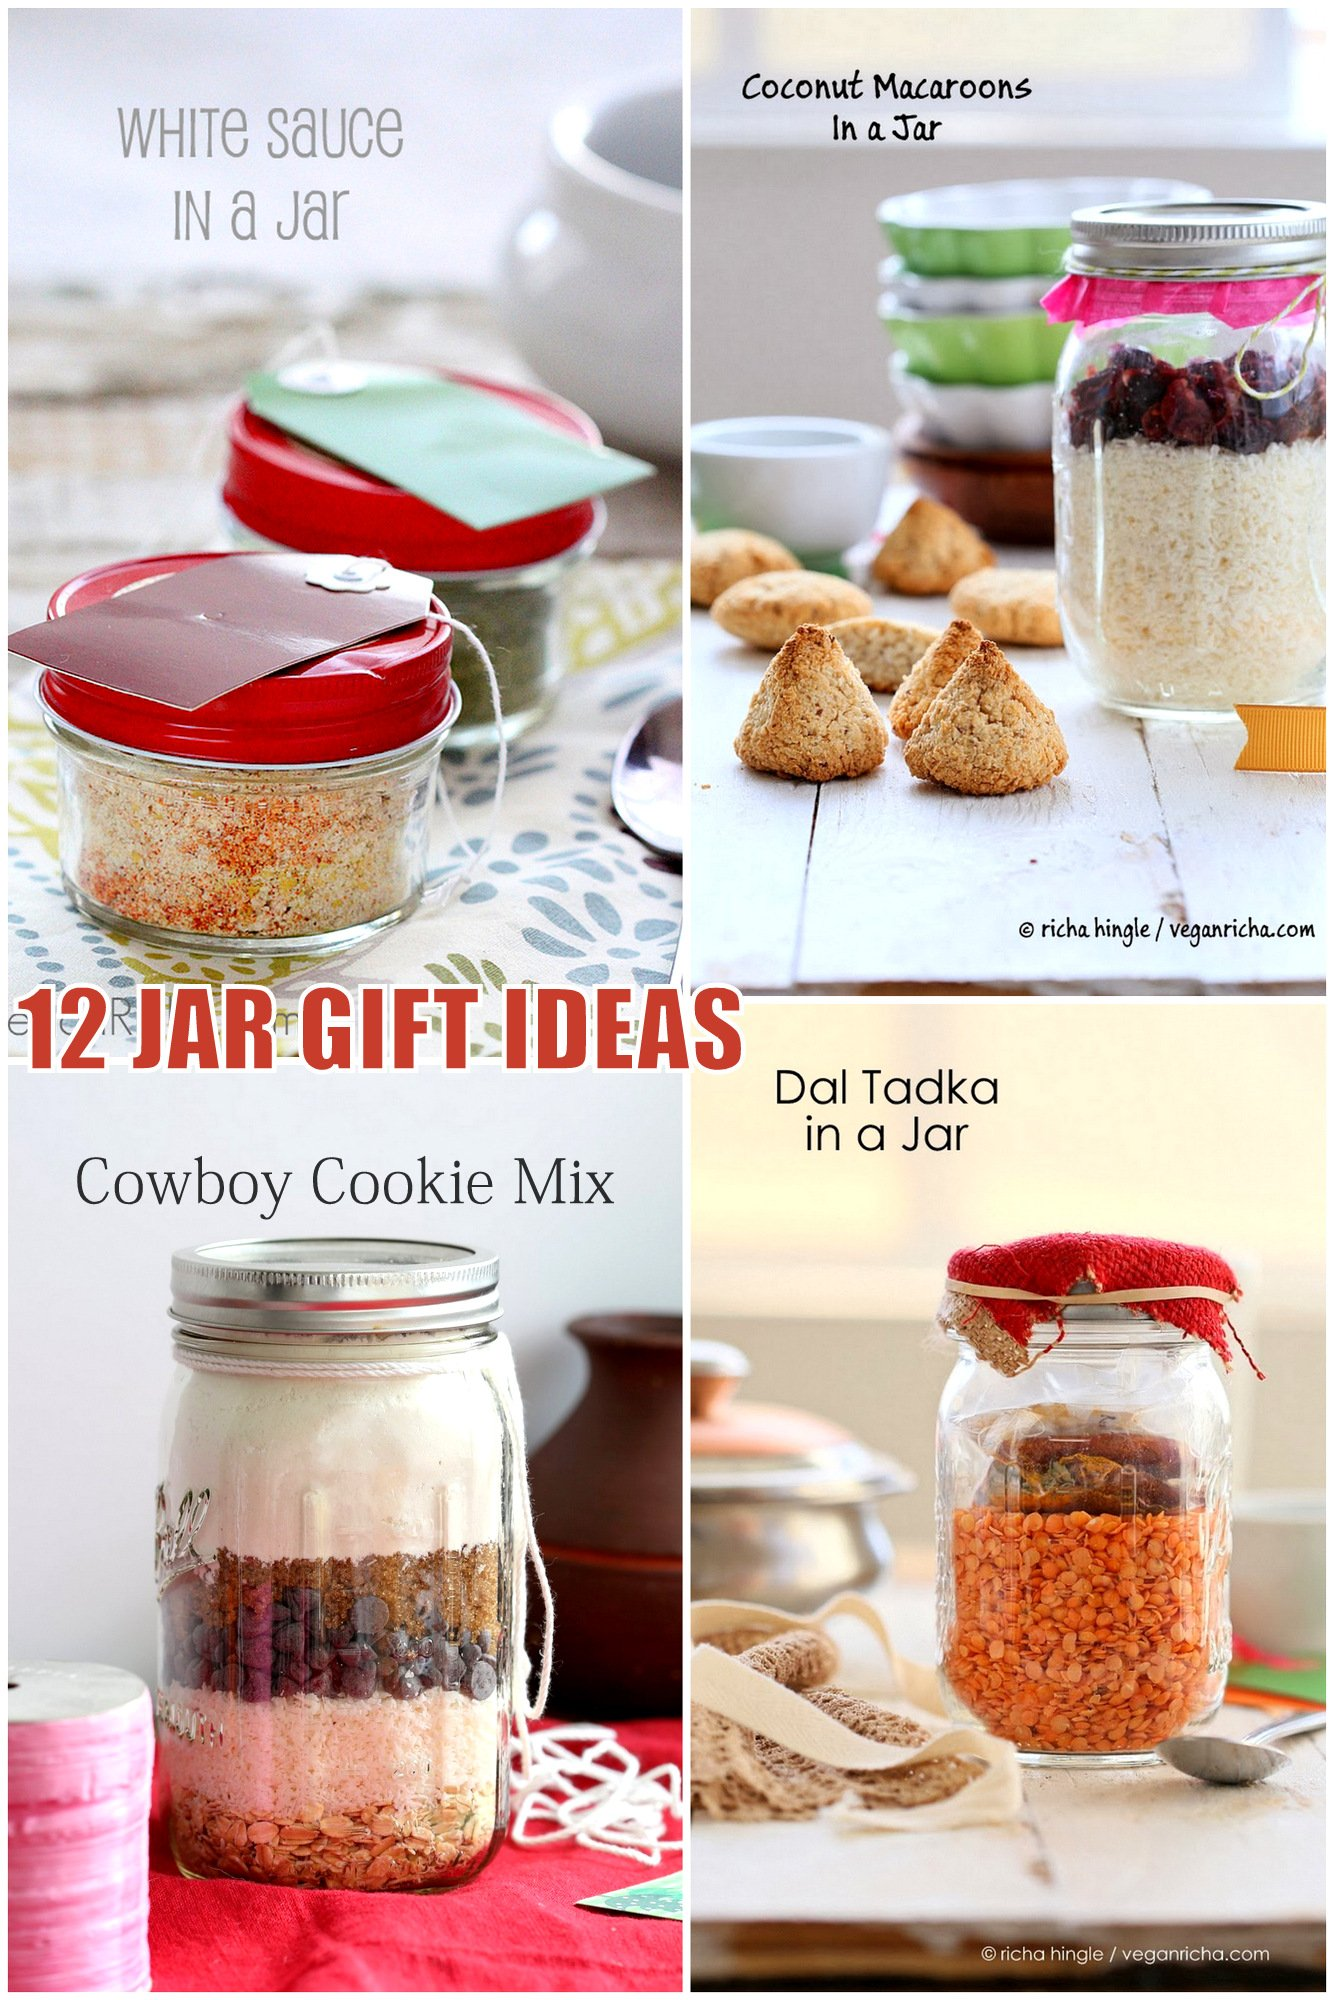 12 Ideas For Holiday Mason Jar Gifts Vegan Gluten Free Options Vegan Richa